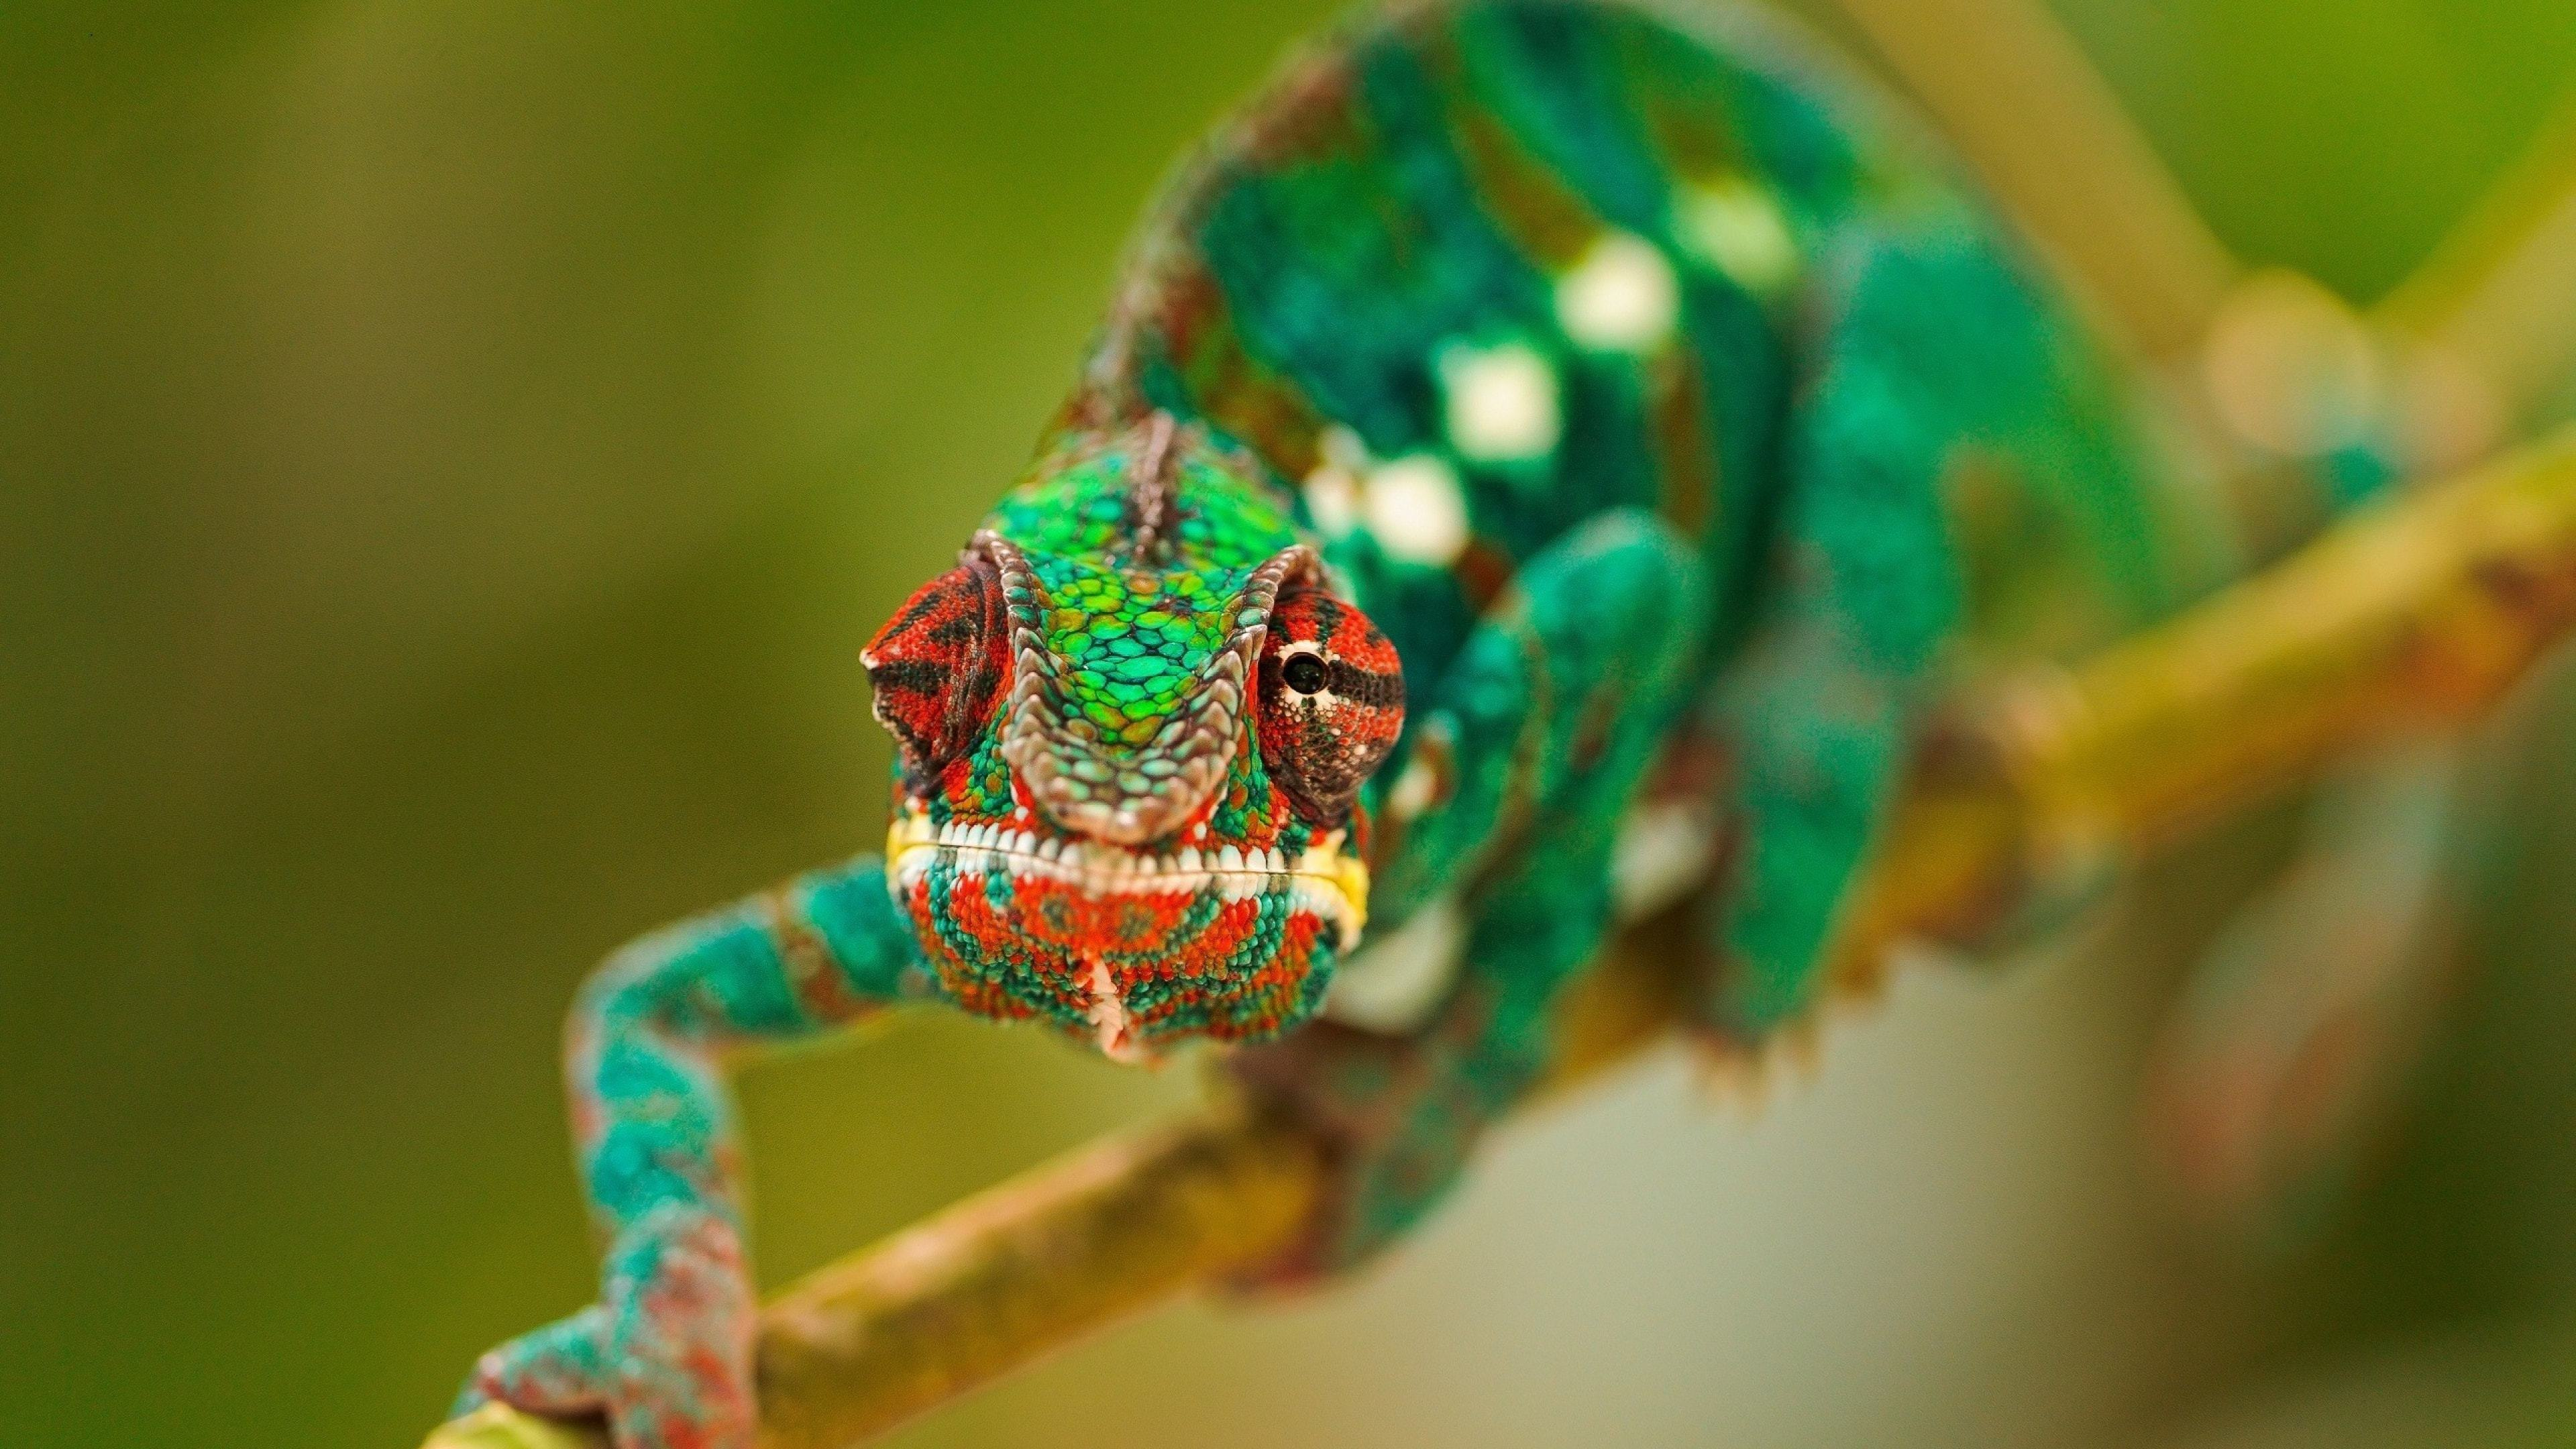 Chameleon Widescreen